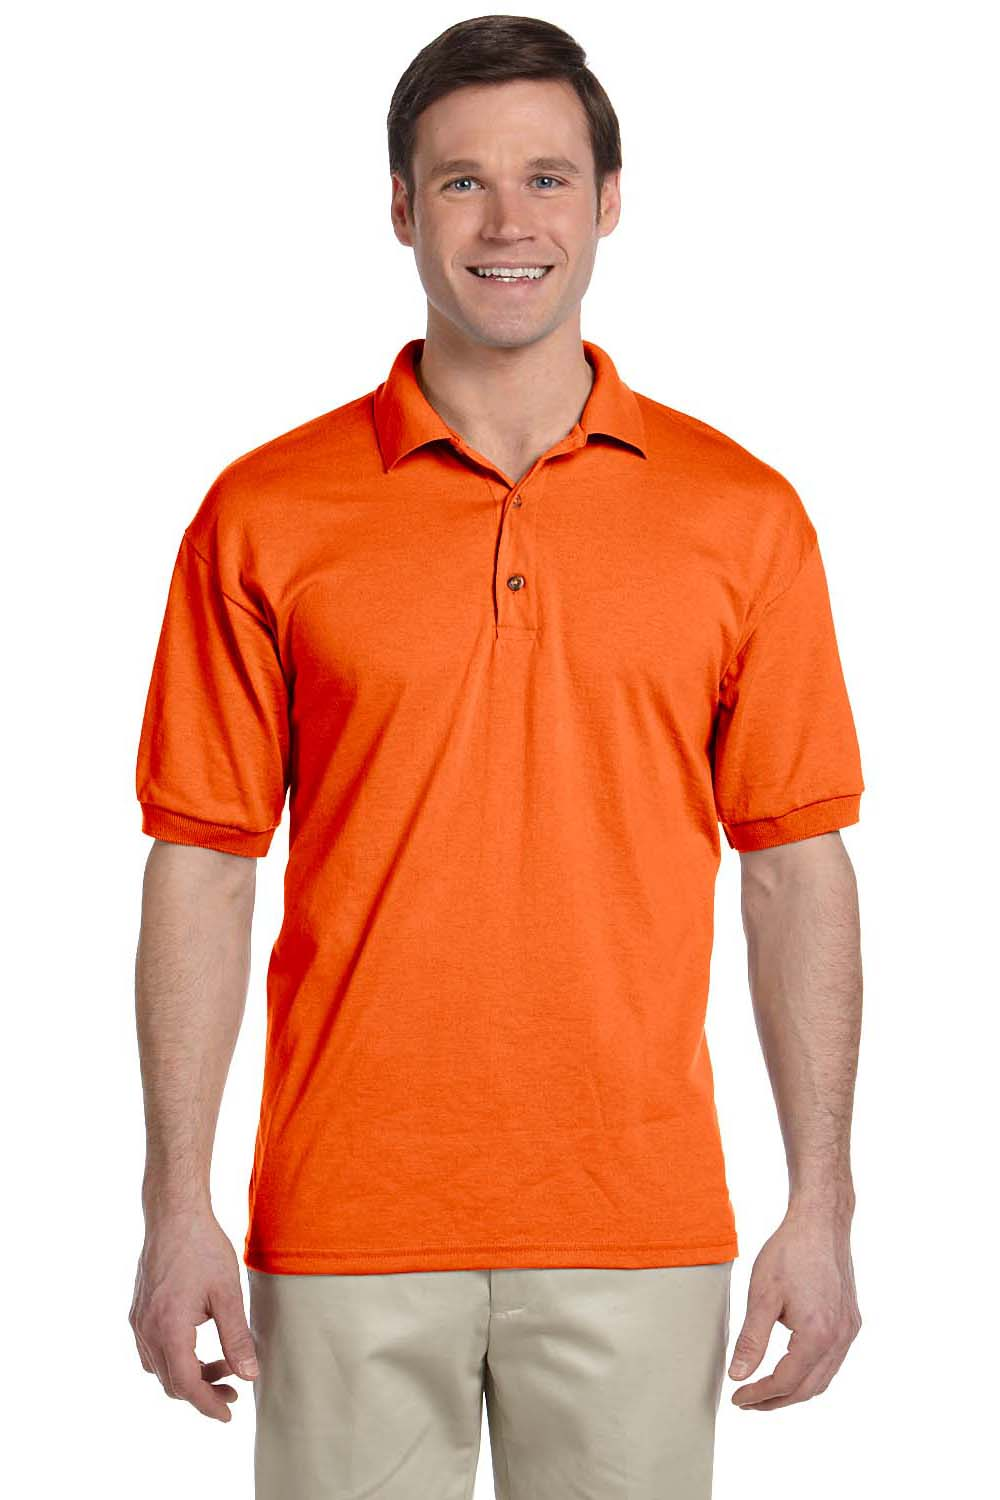 Gildan G880 Mens DryBlend Moisture Wicking Short Sleeve Polo Shirt Orange Front